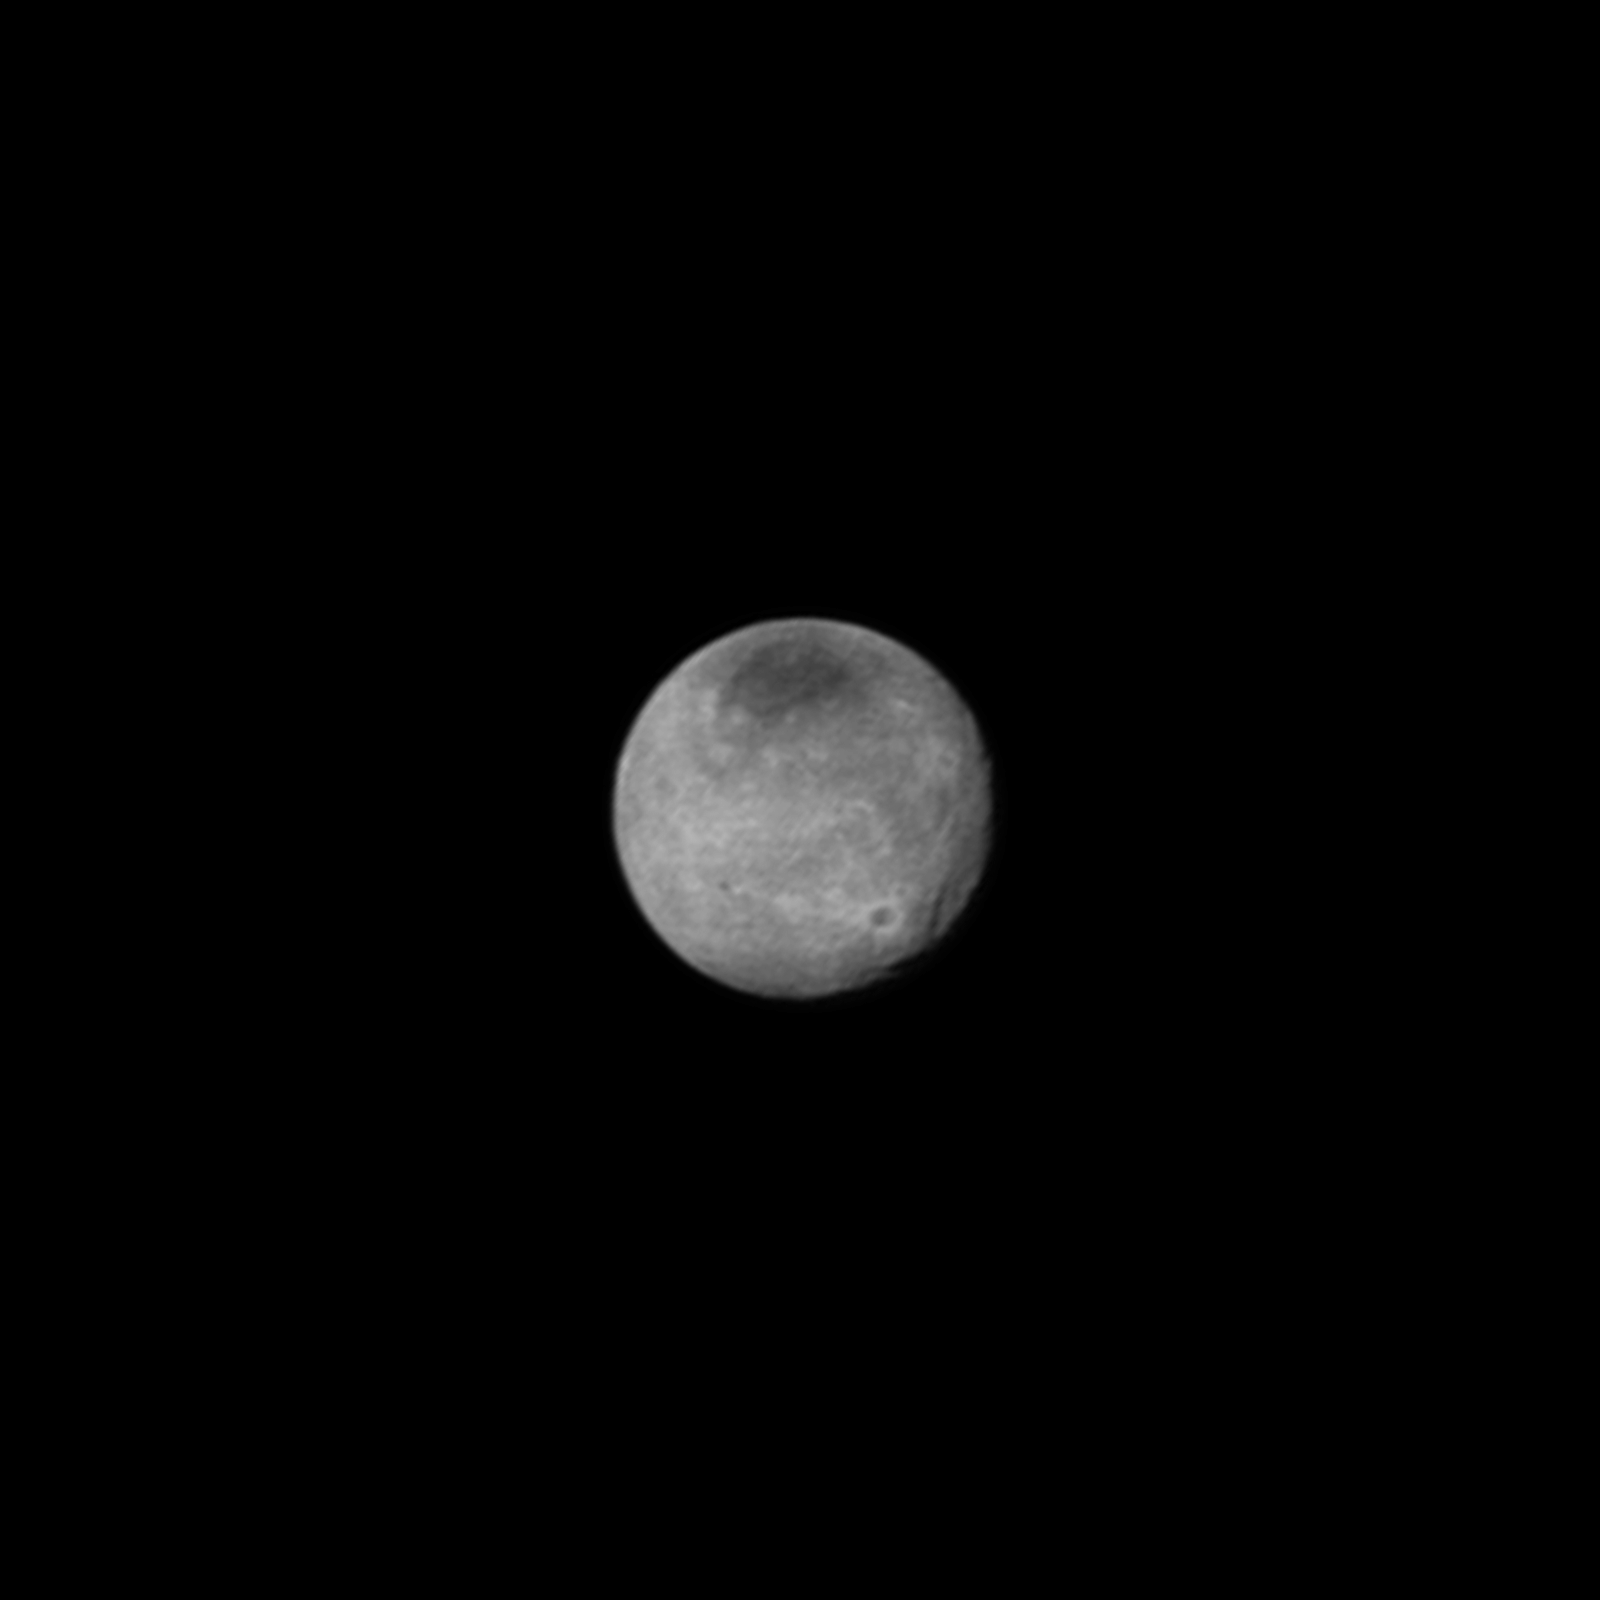 Pluto's moon Charon, seen here in true color, has a dark, red-tinted feature on its north pole. Credit: NASA/JHUAPL/SWRI